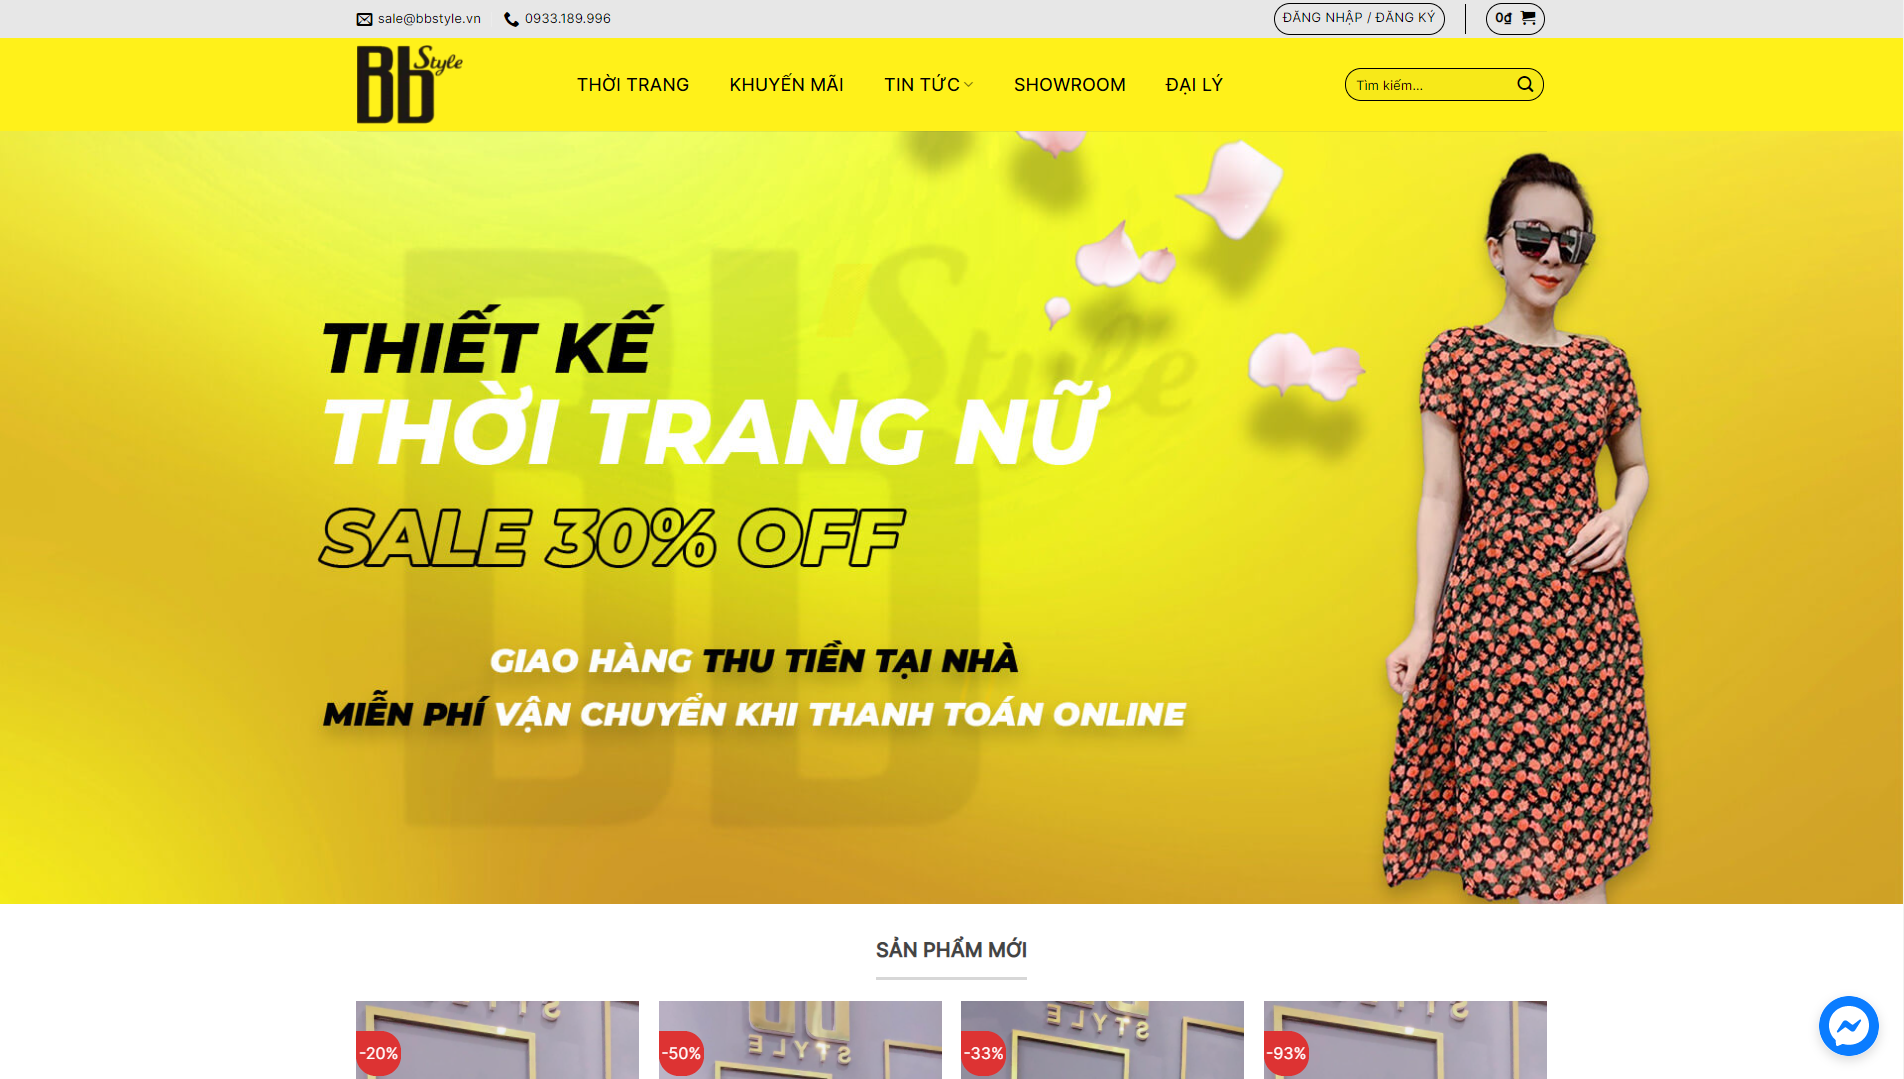 Mẫu giao diện Website Thời trang BBstyle